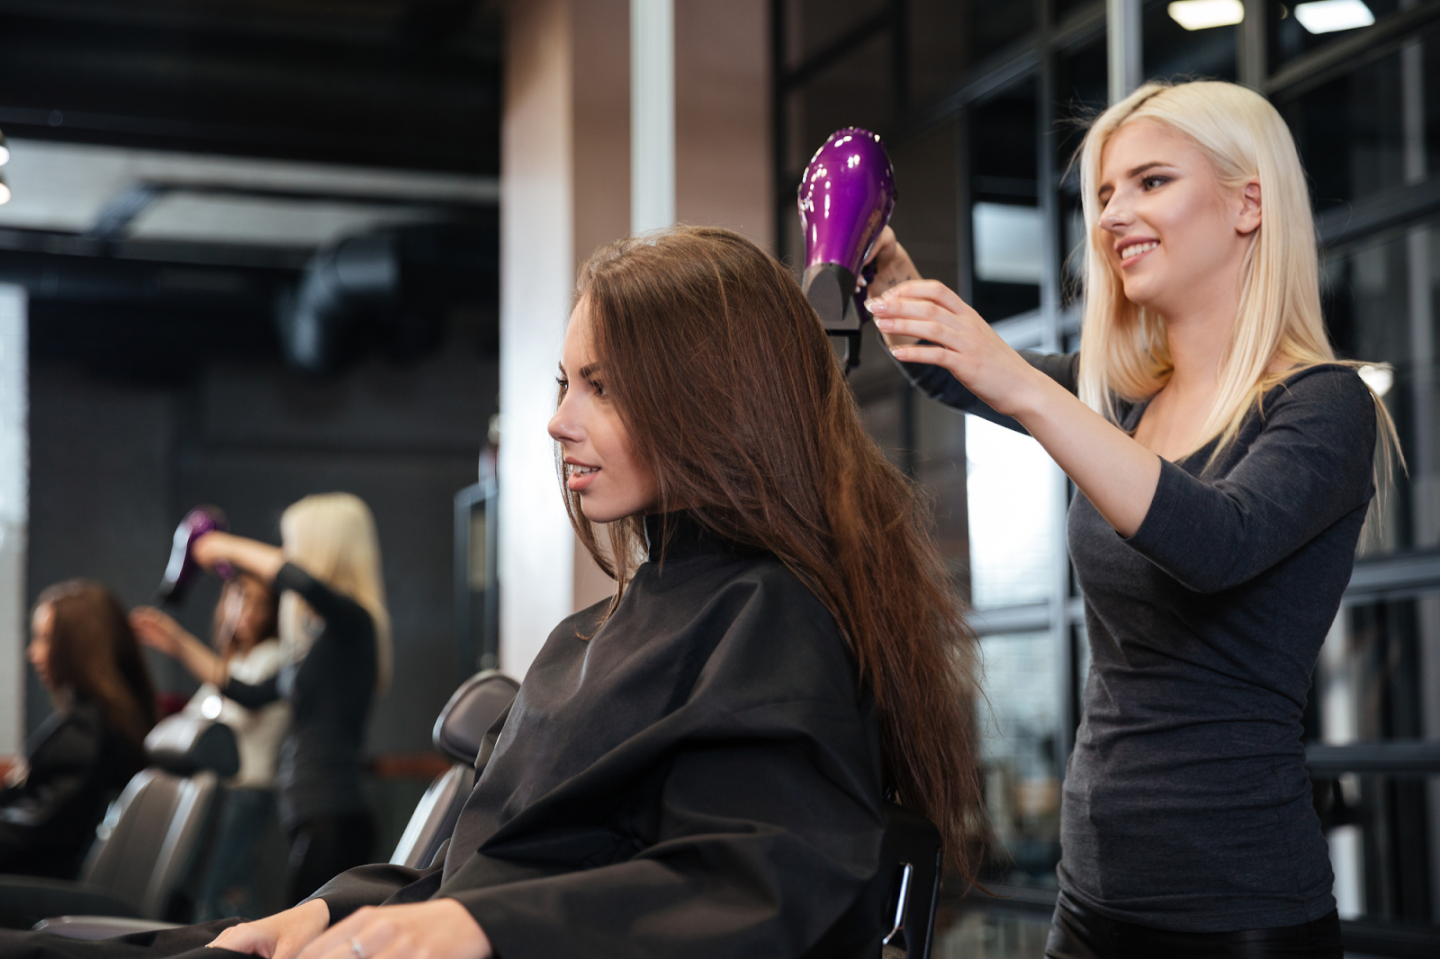 WANT TO OPEN A BEAUTY SALON? LEARN THE BASICS HERE